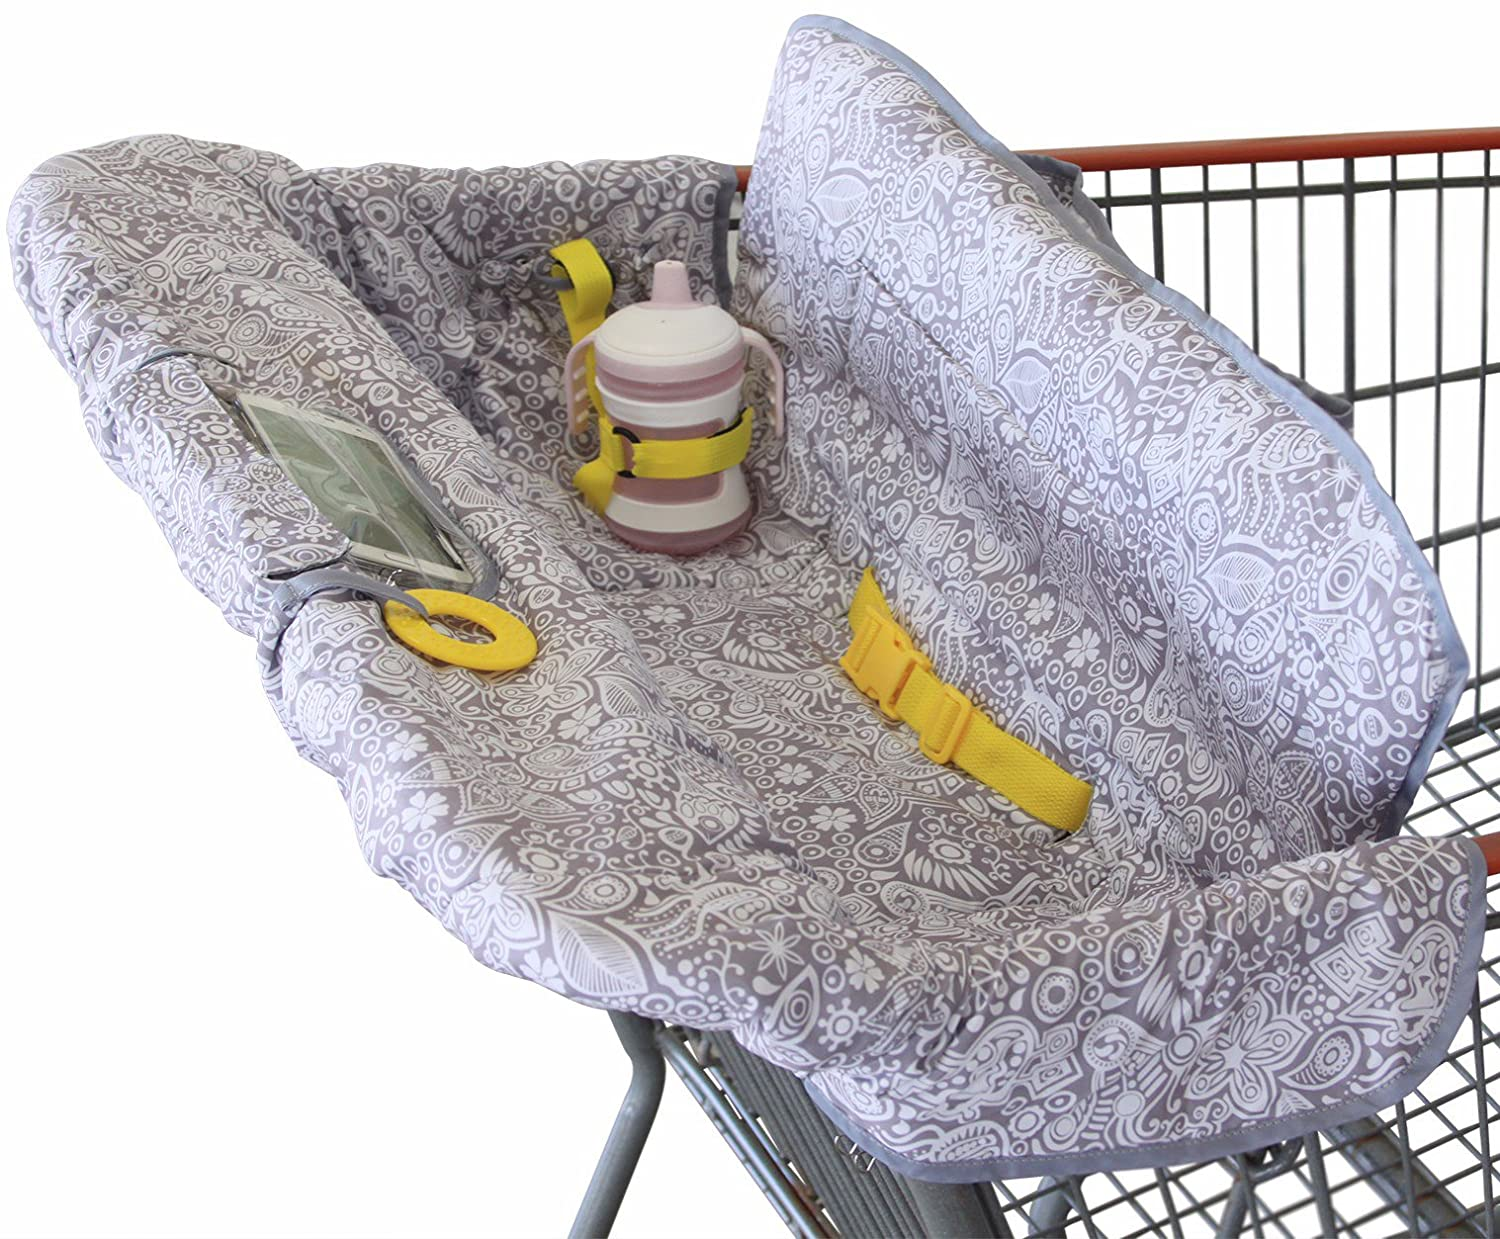 Shopping Cart Cover for Baby or Toddler | 2-in-1 High Chair Cover | Compact Universal Fit | Modern Unisex Design for Boy or Girl | Includes Carry Bag | Machine Washable | Fits Restaurant Highchair Suessie